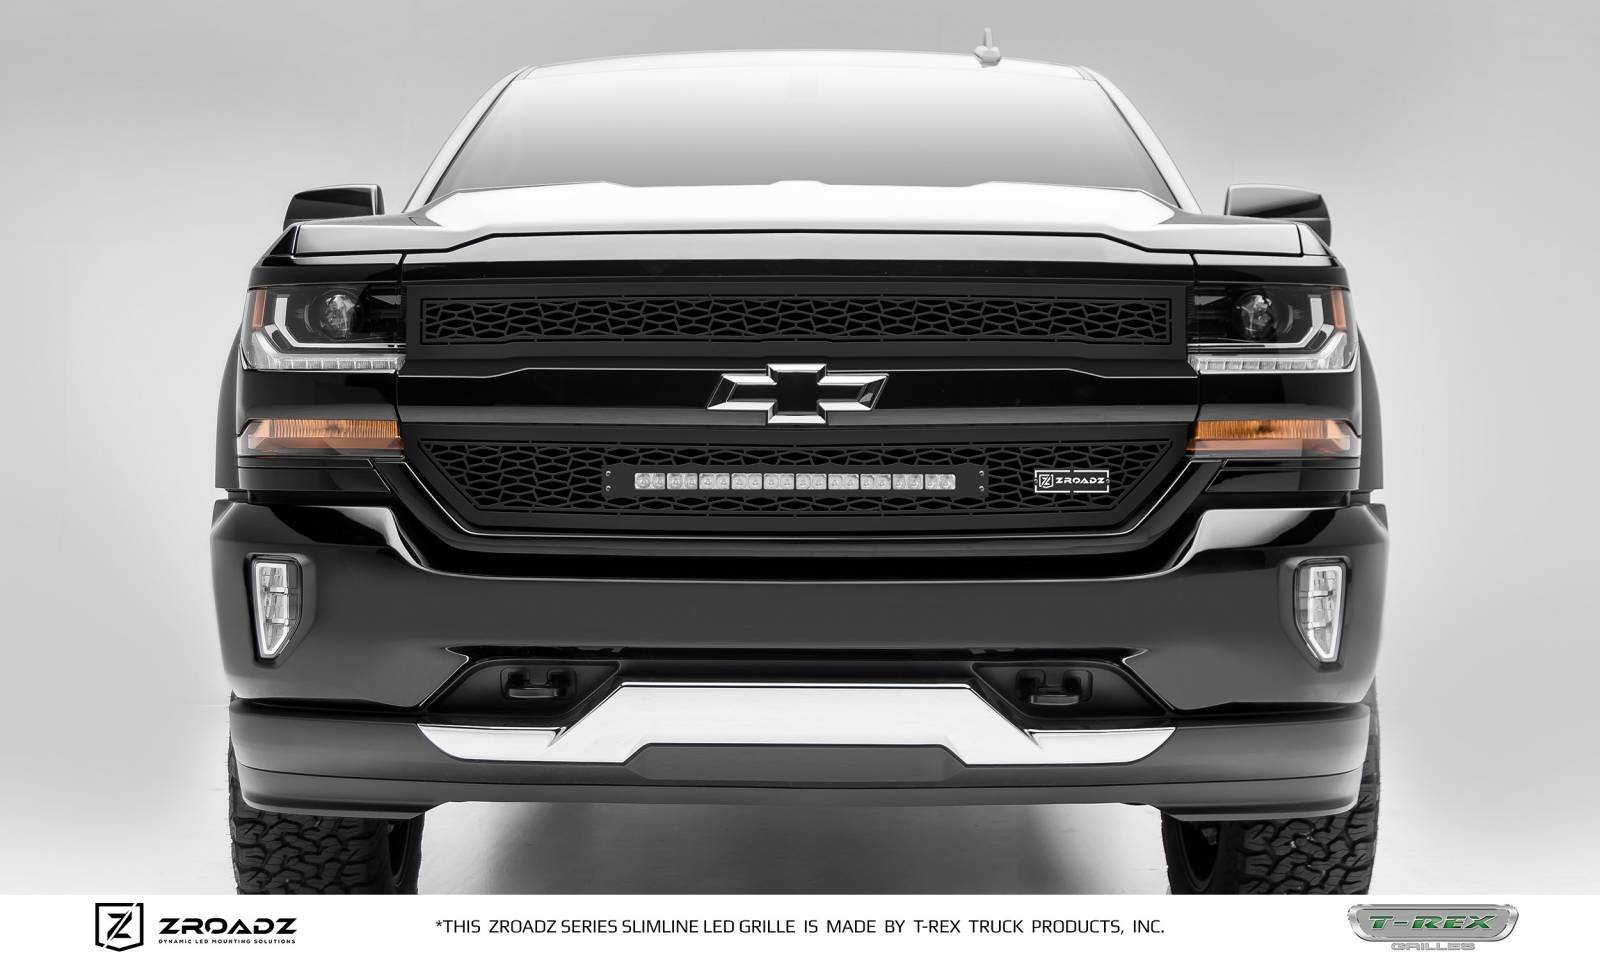 T-REX Chevrolet Silverado 1500 - ZROADZ Series - 2 PC Main Insert - Grille w/ One 20 Inch Slim Line Single Row LED Light Bar - Includes Universal Wiring Harness - Part# Z311281